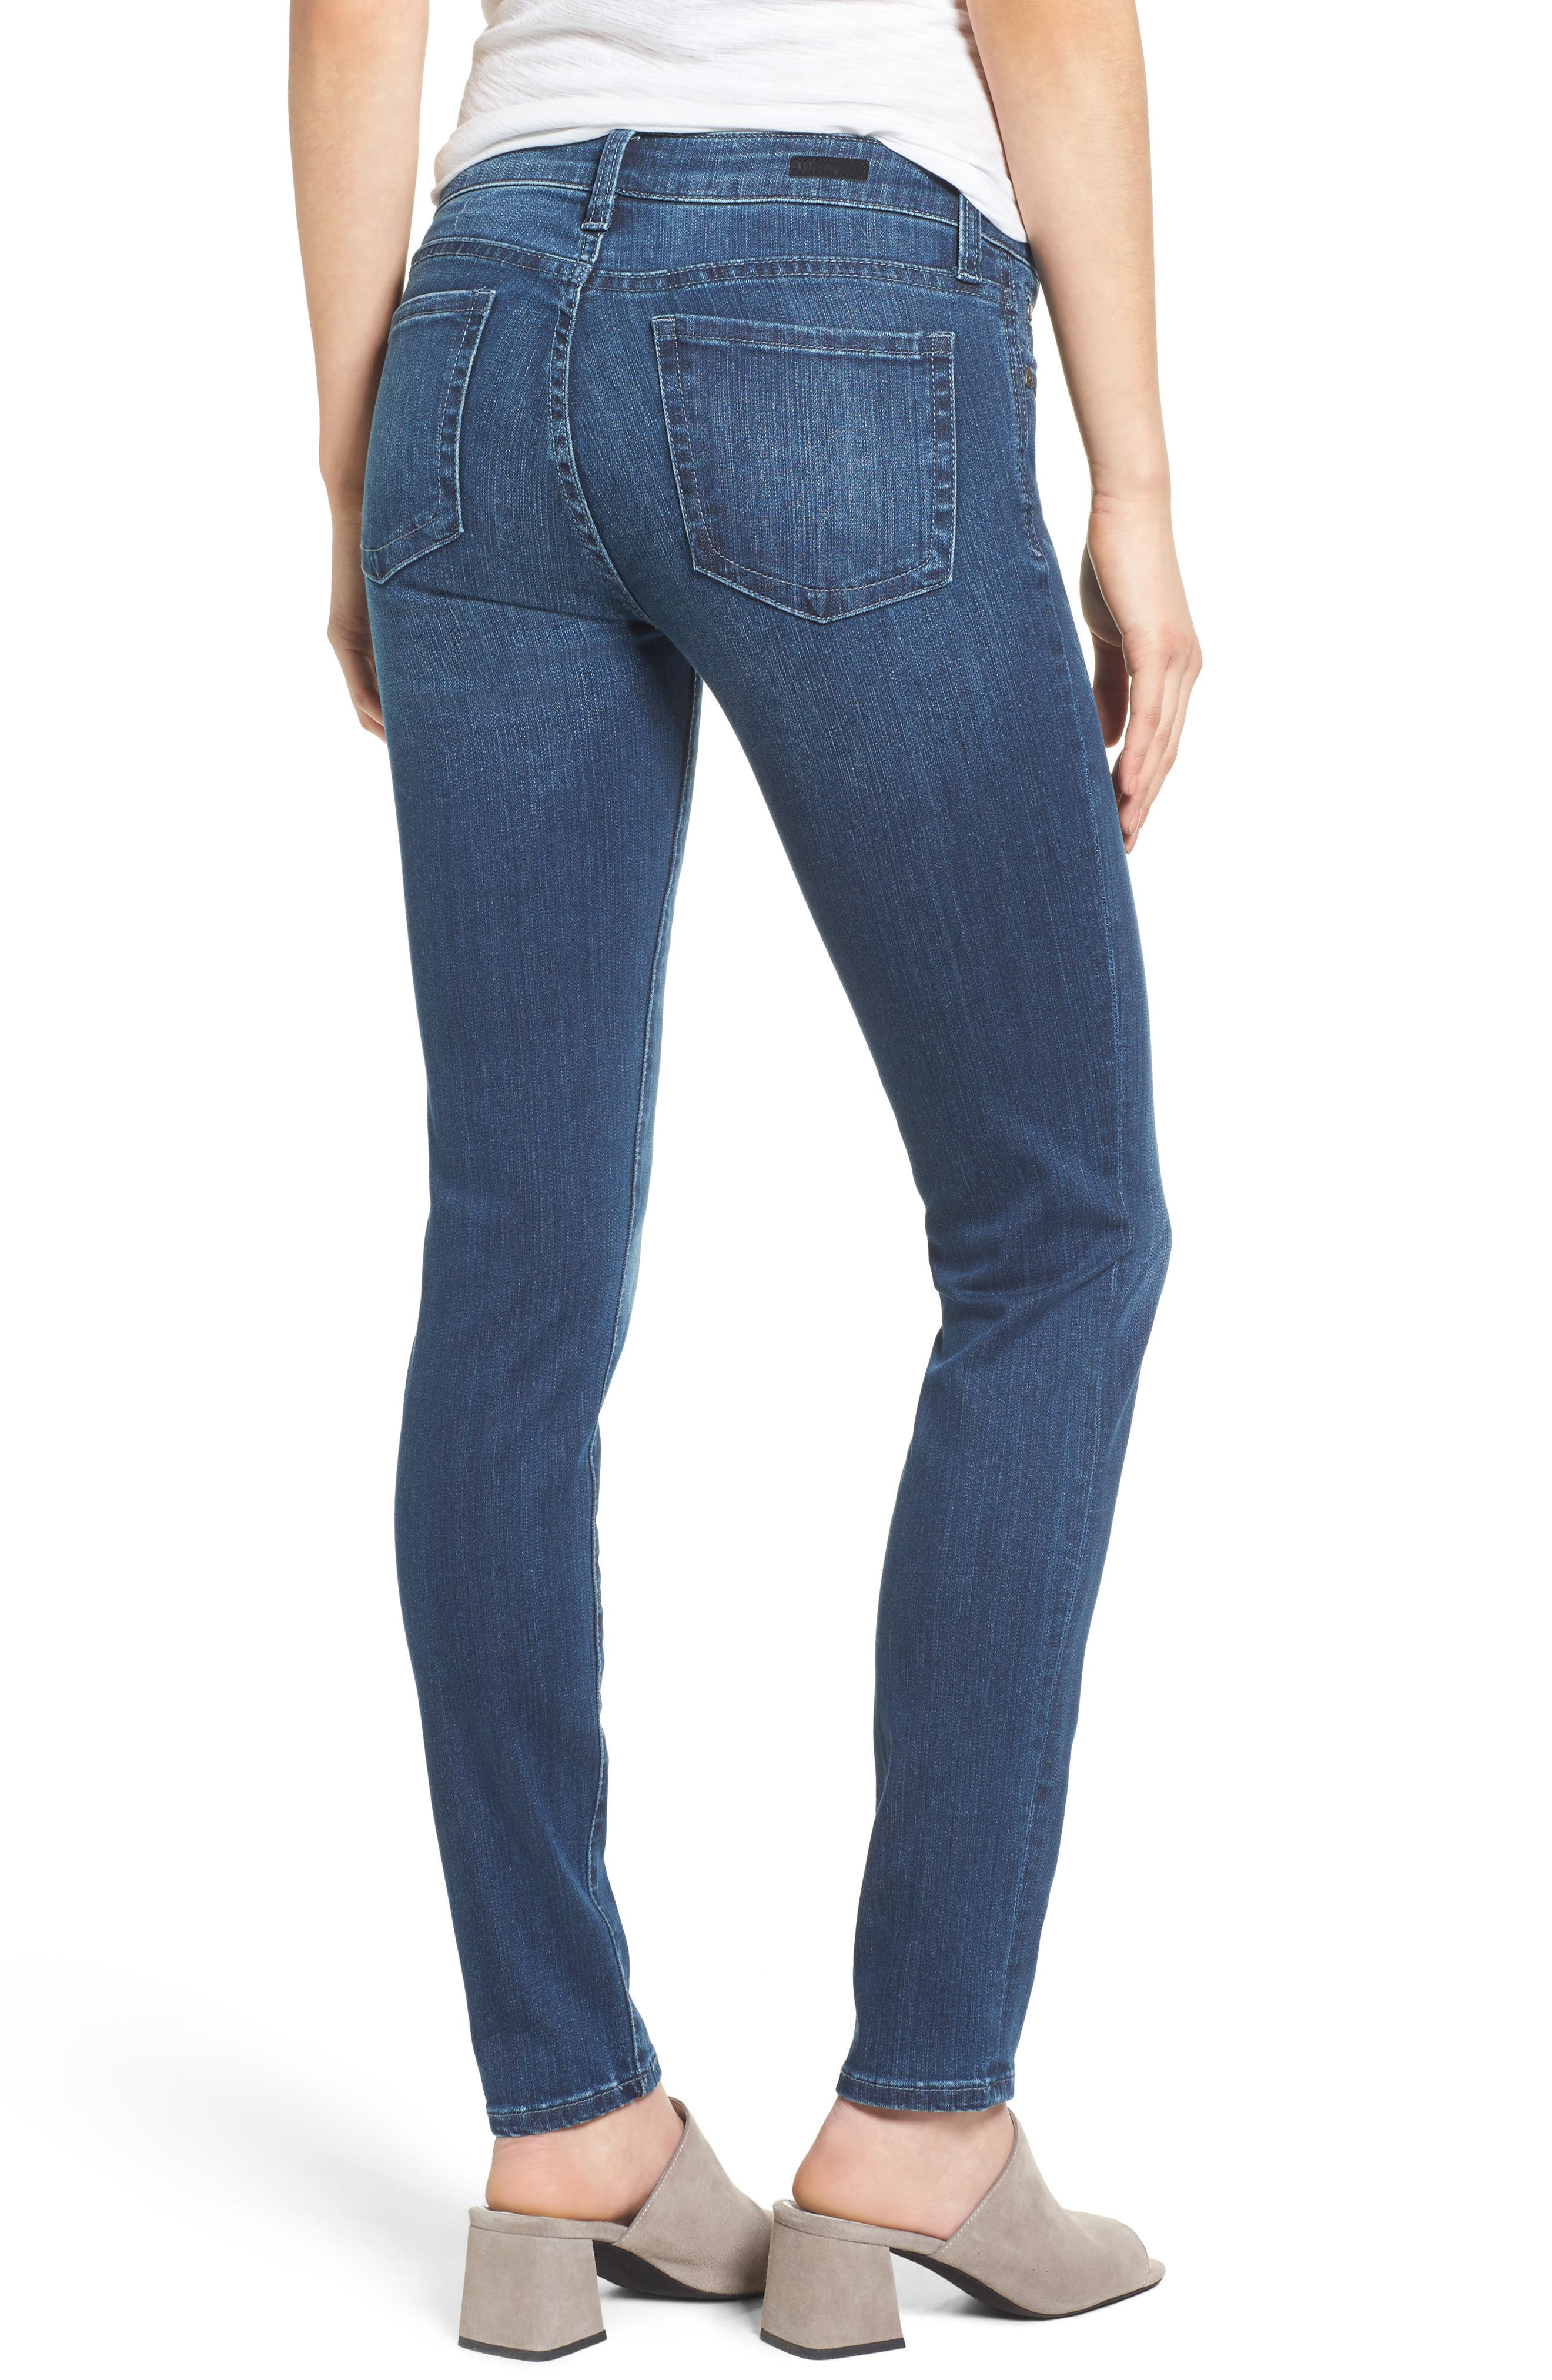 Alternate Image 2  - KUT from the Kloth Diana Stretch Skinny Jeans (Moderation) (Regular & Petite)